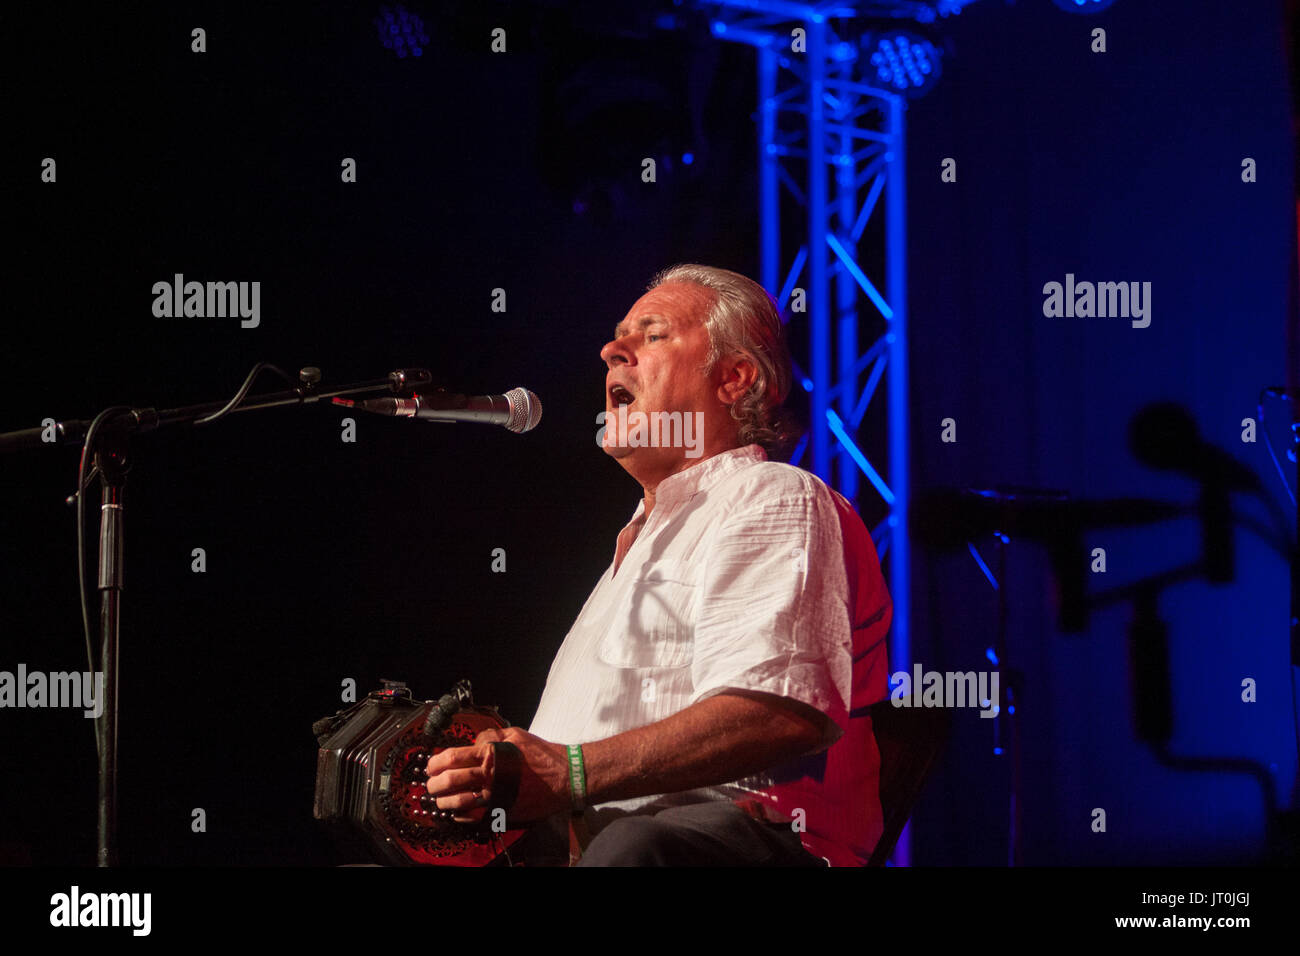 Sidmouth, 6th July 17 Geoff Lakeman on stage at the Sidmouth Folk Week Festival. The event continues until the 11th August. Credit: Photo Central/Alamy Live News - Stock Image